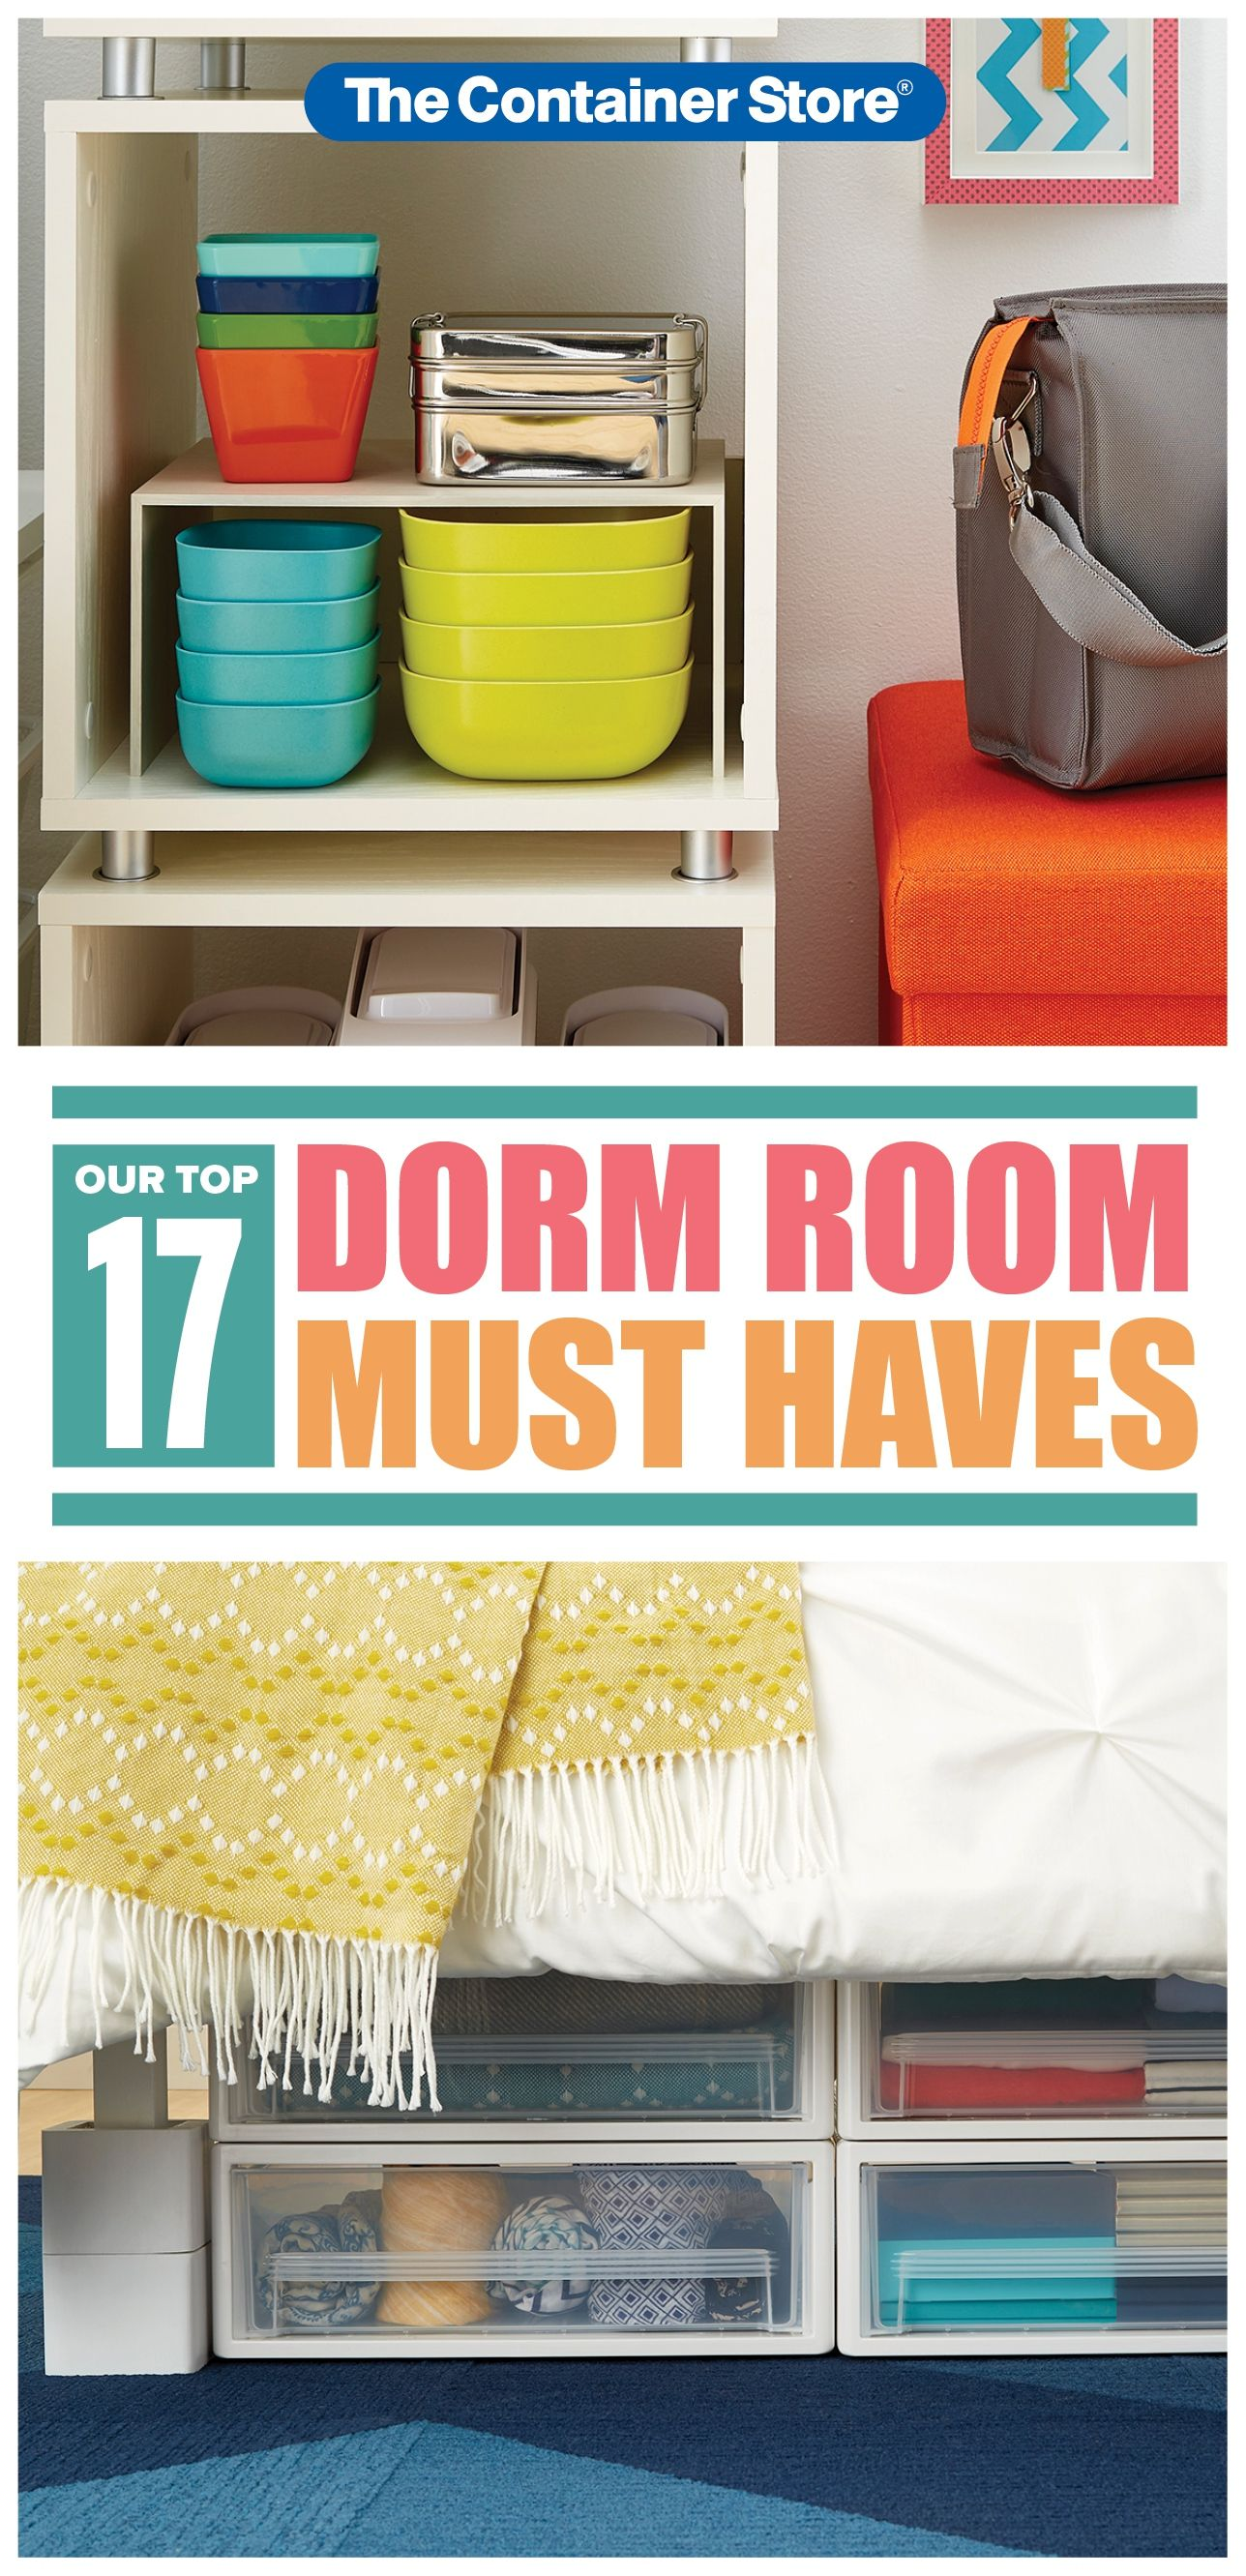 Get High School Graduates What They Need For Their Freshman Year In A Dorm Room Check Out Our Top 1 Dorm Room Essentials List Dorm Room Organization Dorm Room